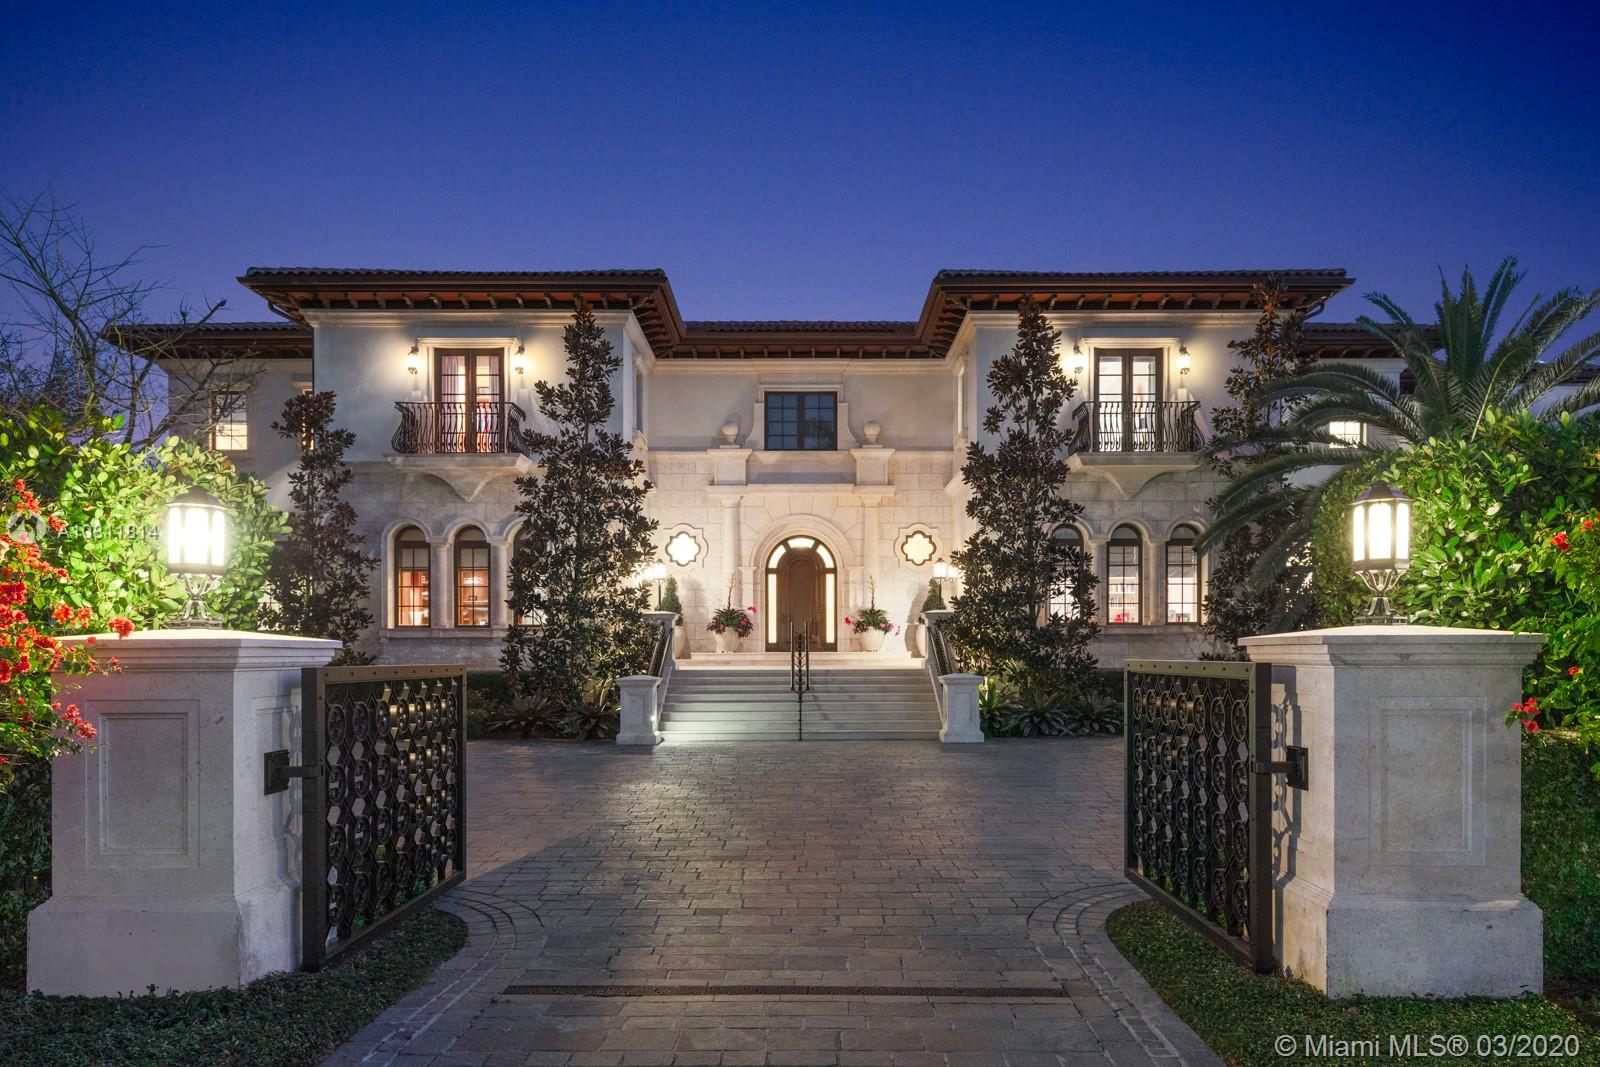 Located on the water's edge in Gables Estates on a 42,253 sf lot facing a wide lagoon with direct bay access, this luxurious 15,522 total sf, 5BR/7+3BA palladian waterfront villa comes with picturesque views from several sitting areas. Downstairs are the formal living room, dining room, gourmet kitchen, breakfast room, family room with wet bar, and billiards room with a second bar, all with custom Venini glass lighting. The kitchen comes with a hidden butler's kitchen and walk-in wine cellar for an equally impressive collection. Two home offices can be converted into additional bedrooms, and secret storage spaces are scattered throughout. Summer kitchen, saltwater heated pool, 180 ft dock with boatlift and ideal water features enhance this inviting home for both entertaining and leisure.